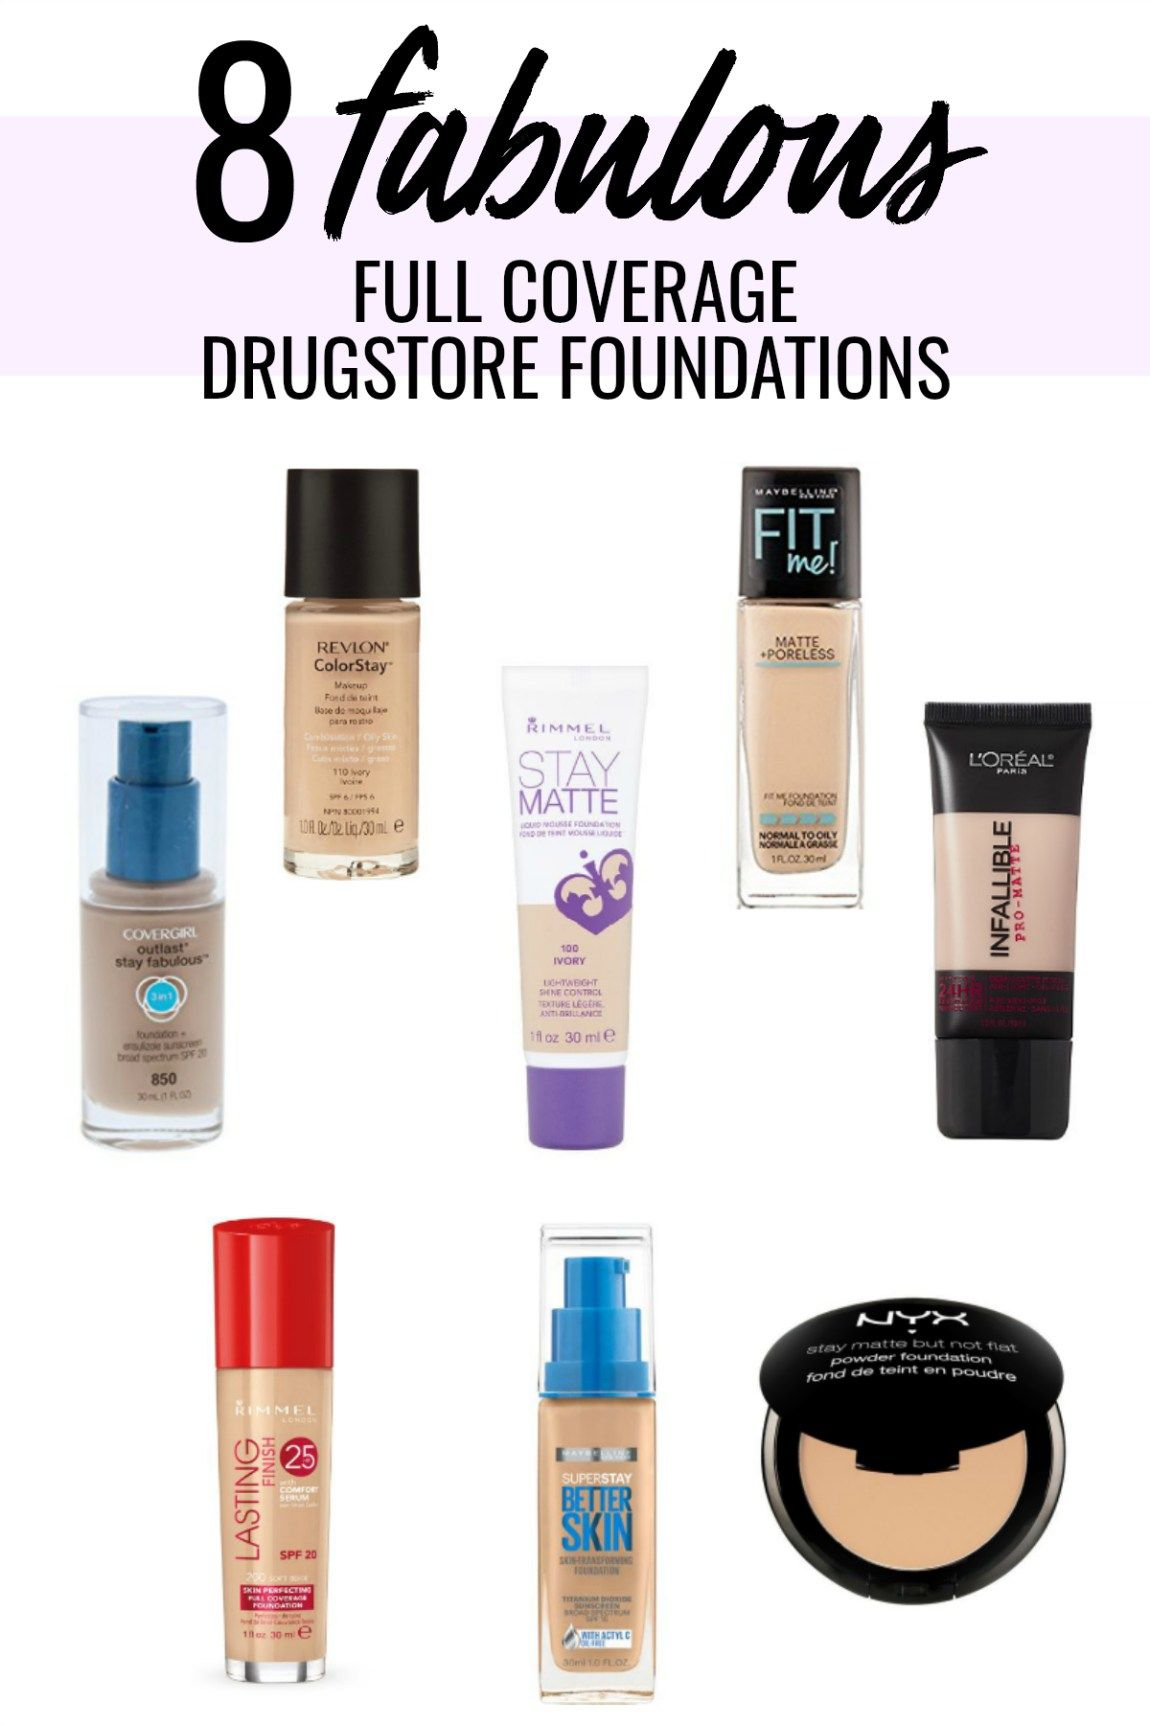 8 Drugstore Foundations BEAUTY Drugstore & Dupes